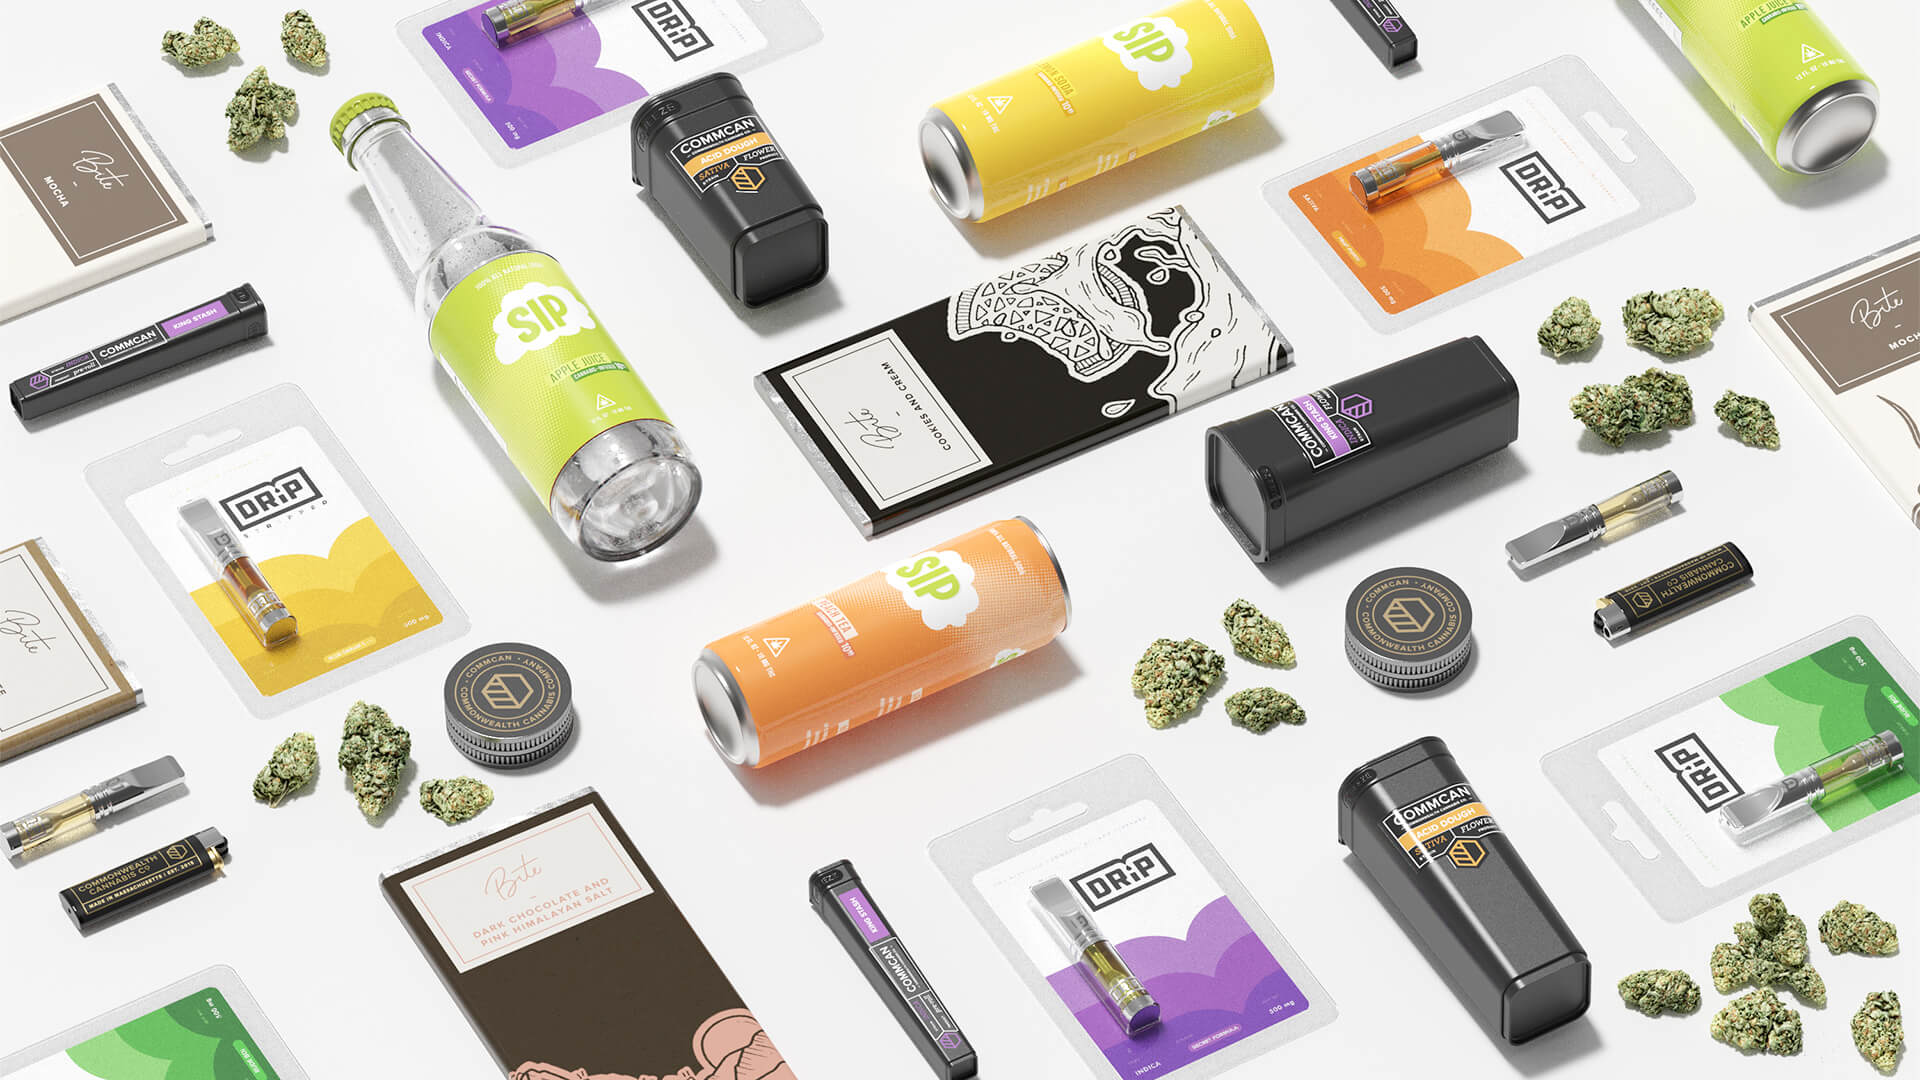 commcan bite sip drip cannabis packaging bottles cans cartridges nugs grinder layed flat on grey background